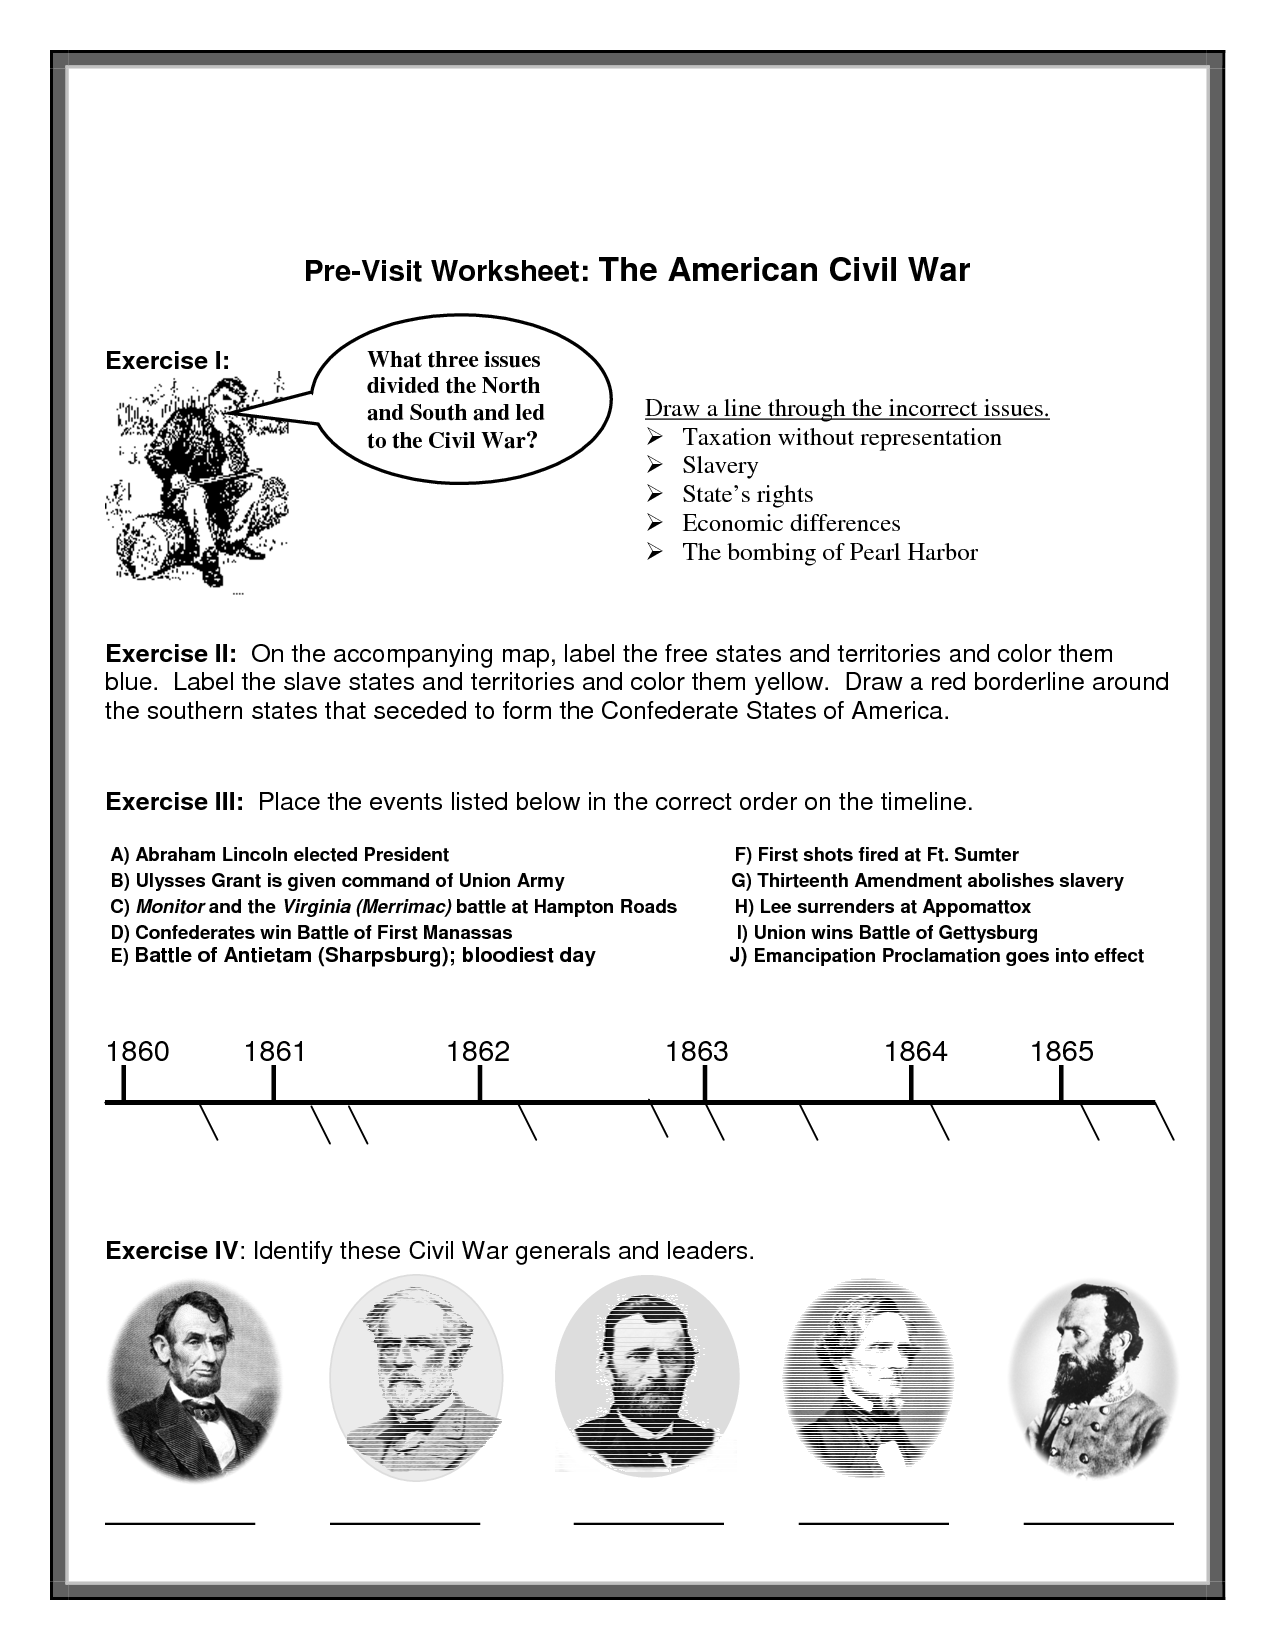 Worksheets Civil War Worksheets civil war printable worksheets pre visit worksheet the american war